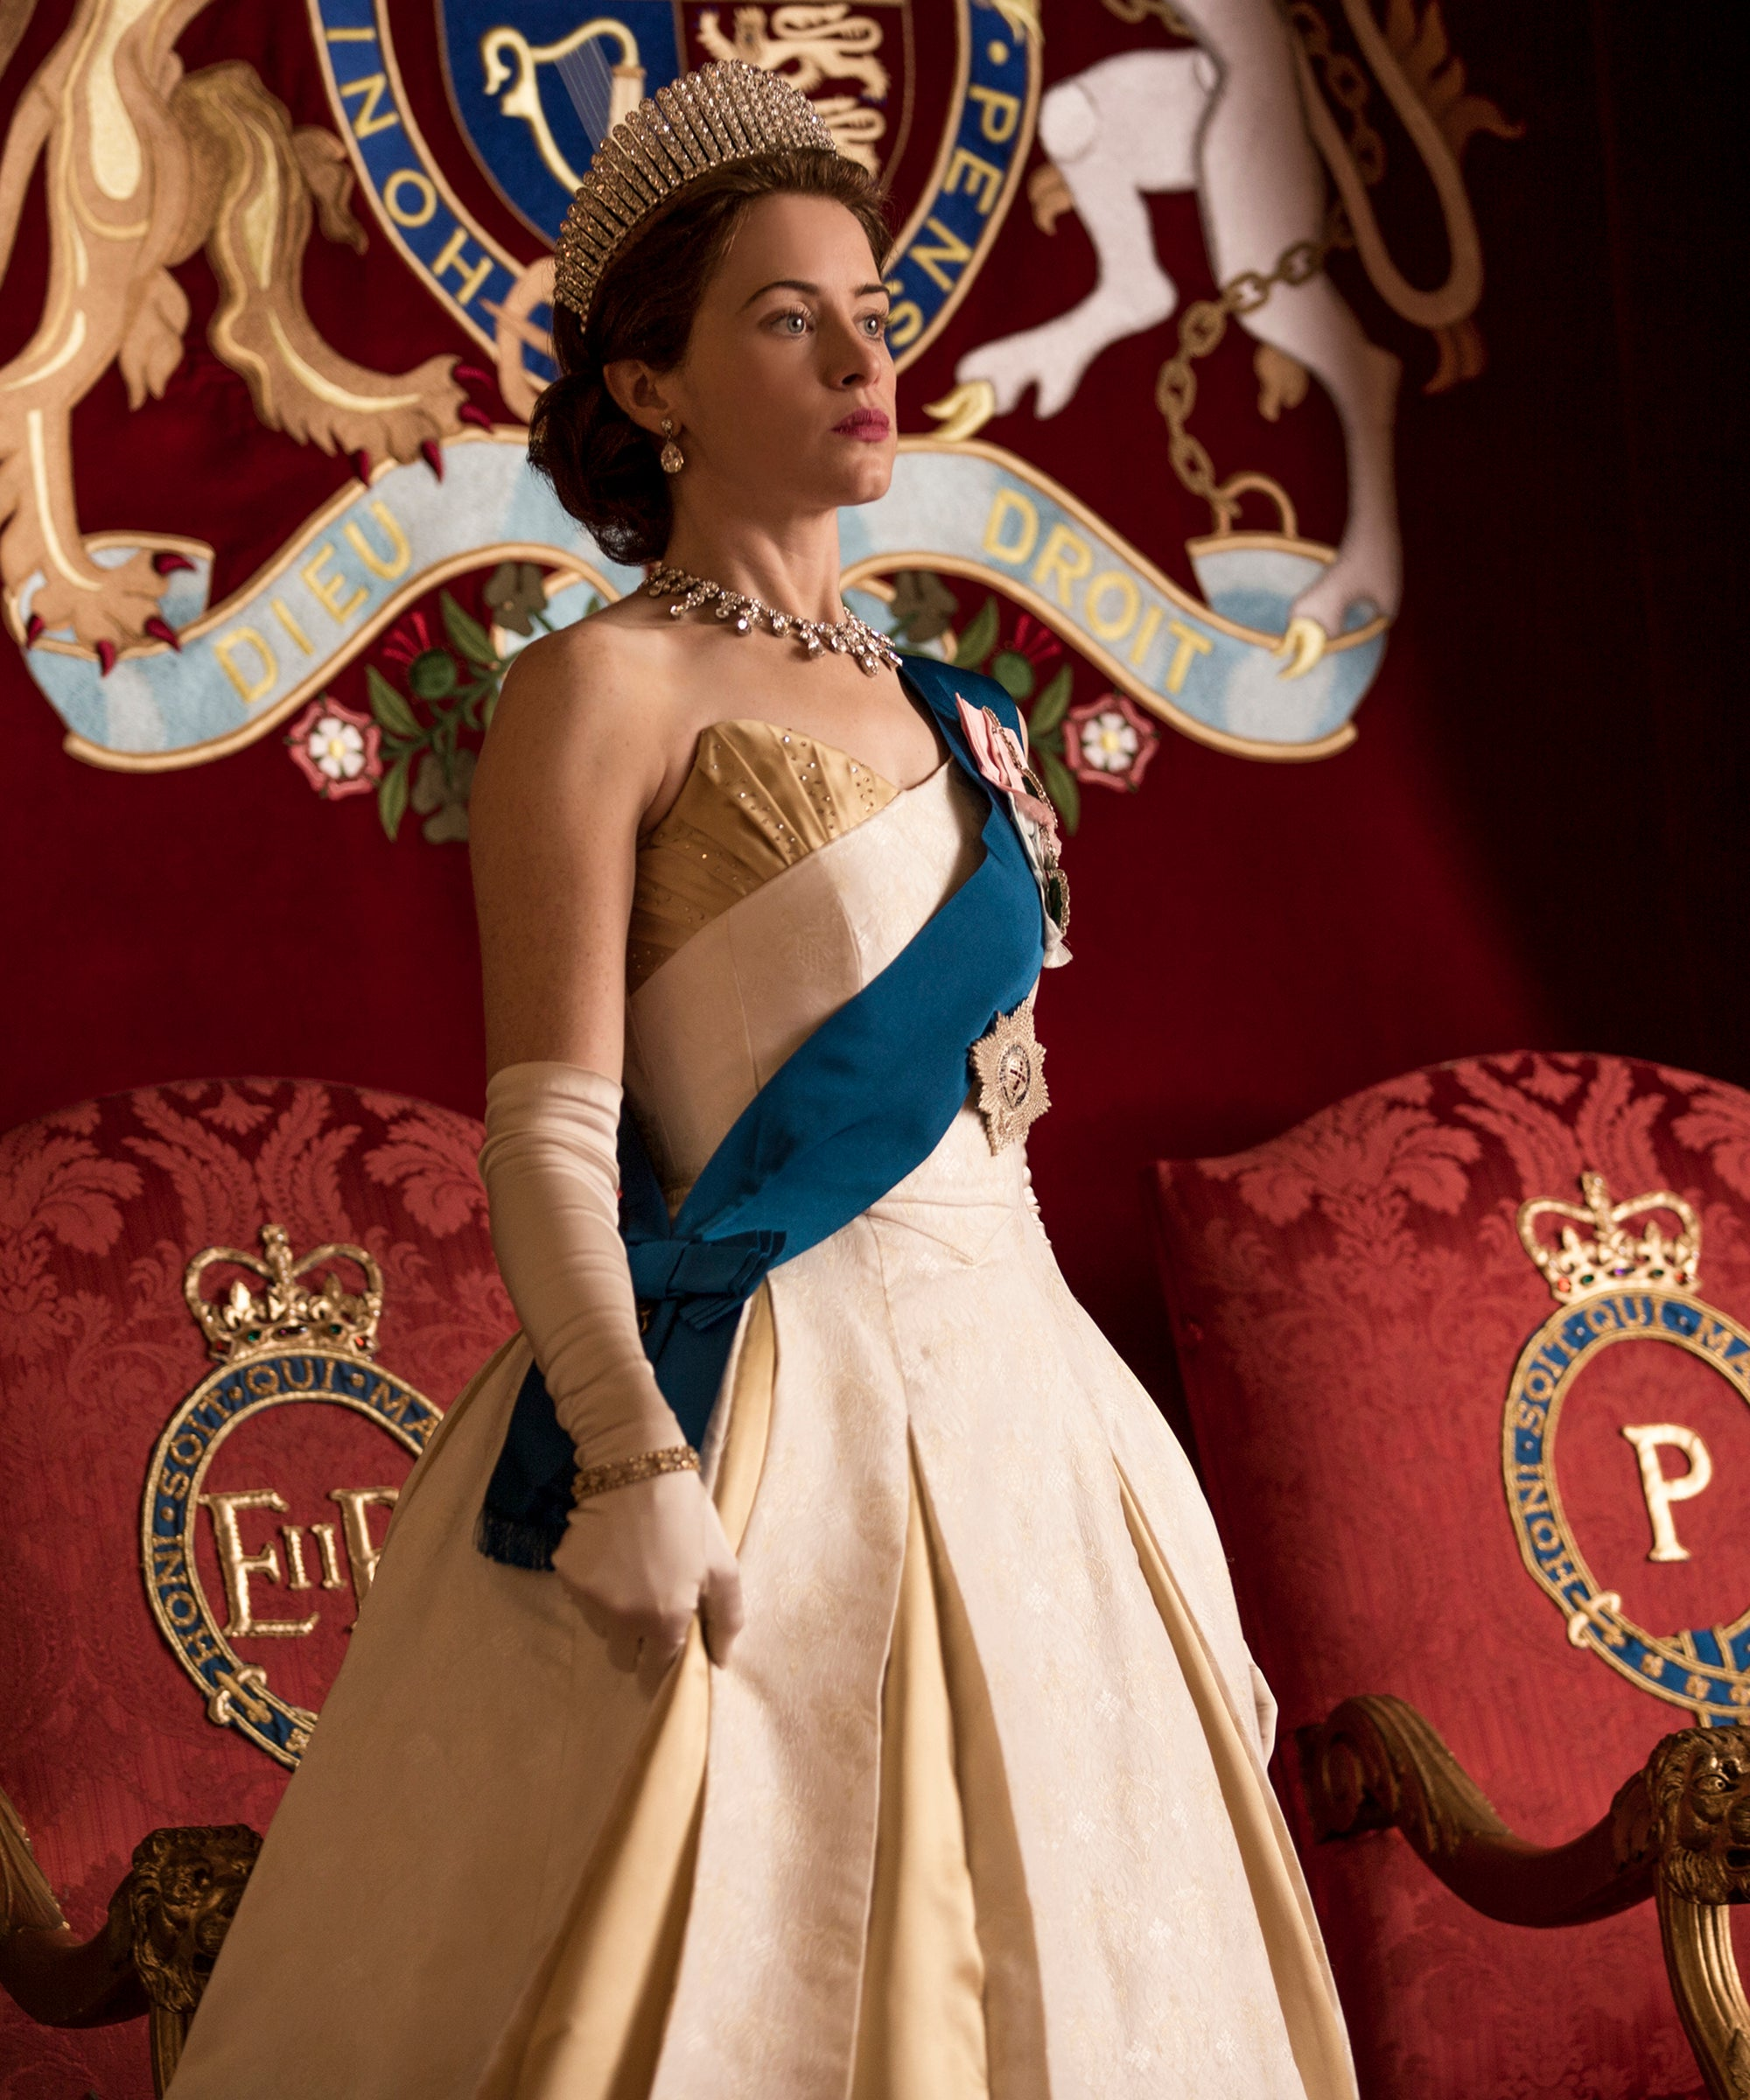 Good News For Fans Of The Crown: Netflix Is Doubling Down On Their British Royal Bet